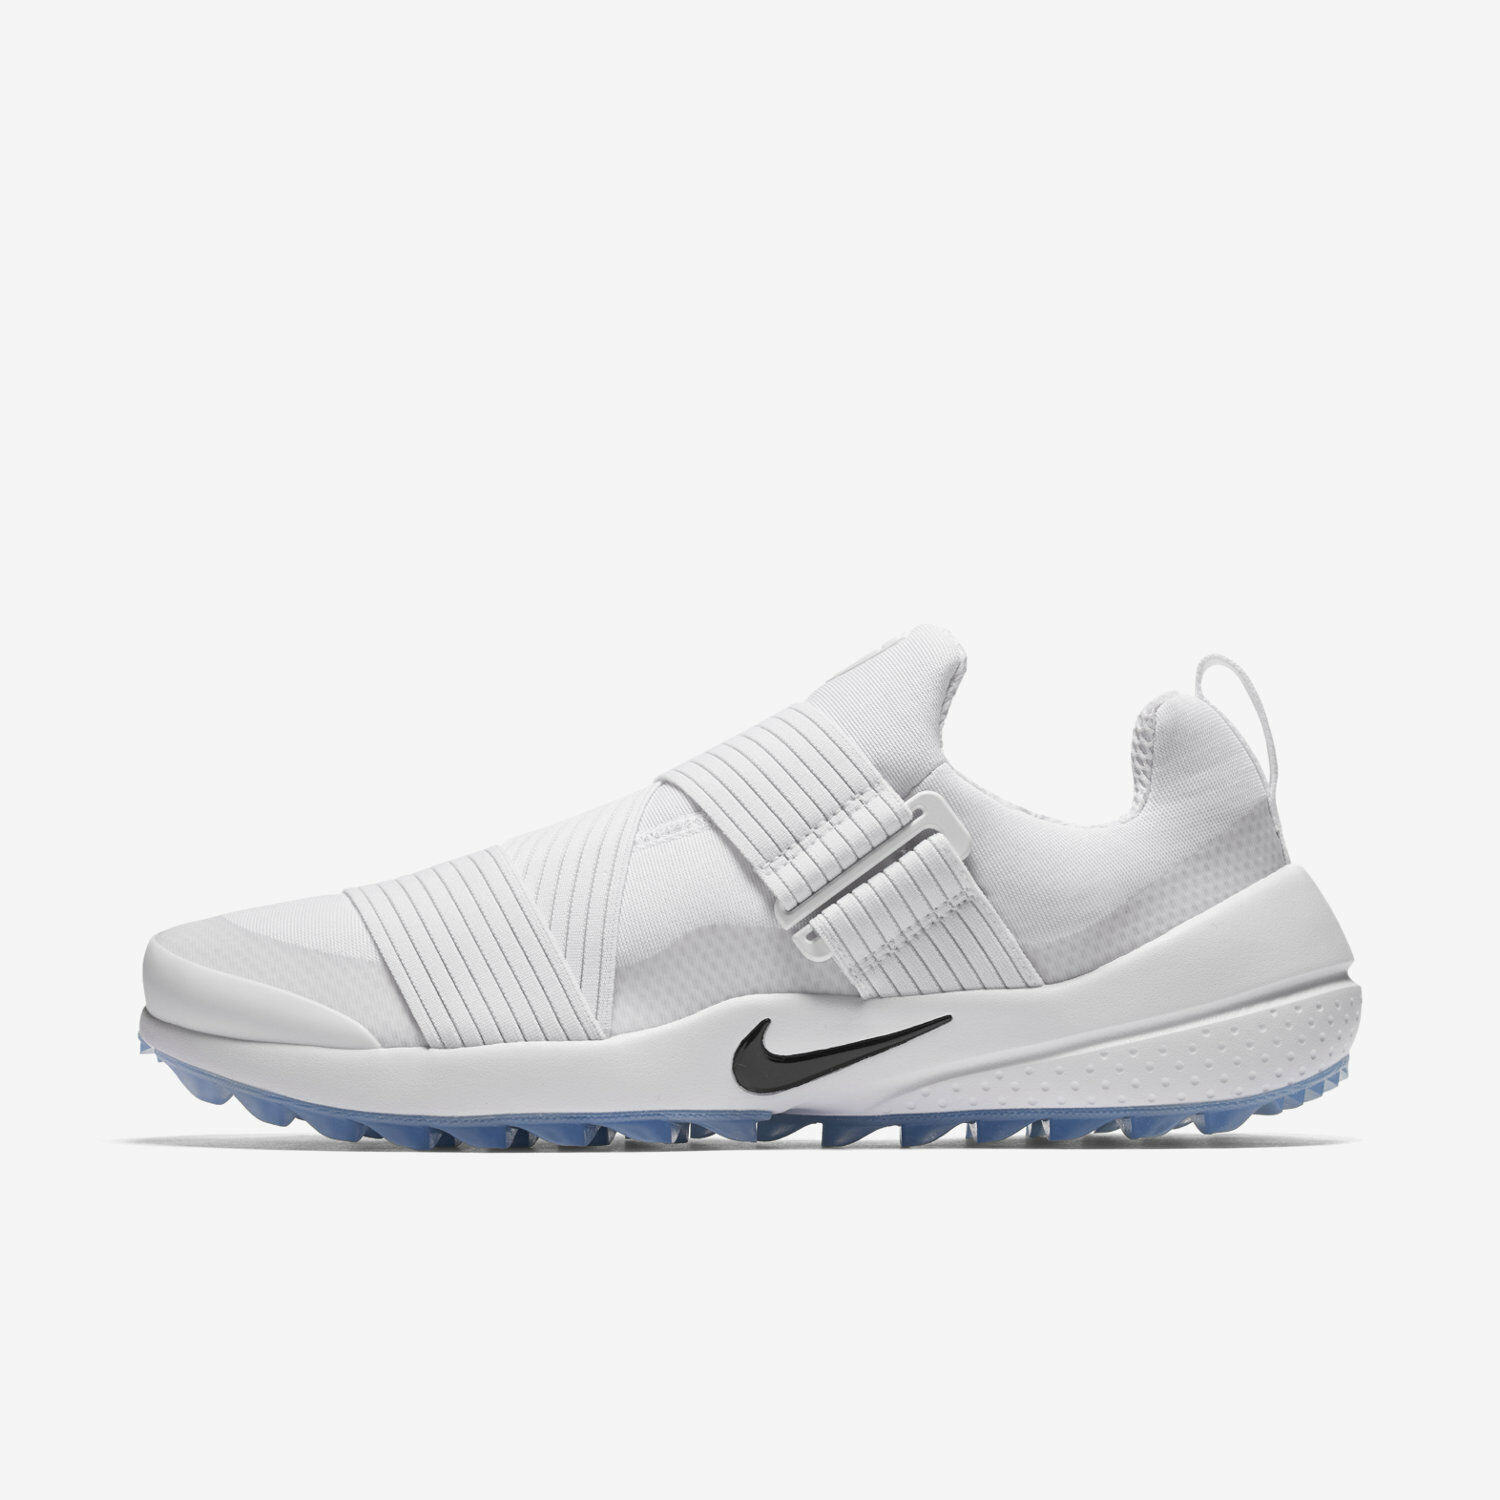 Nike Air Zoom Gimme Men's Spikeless Golf Shoes - White Black 849955-100